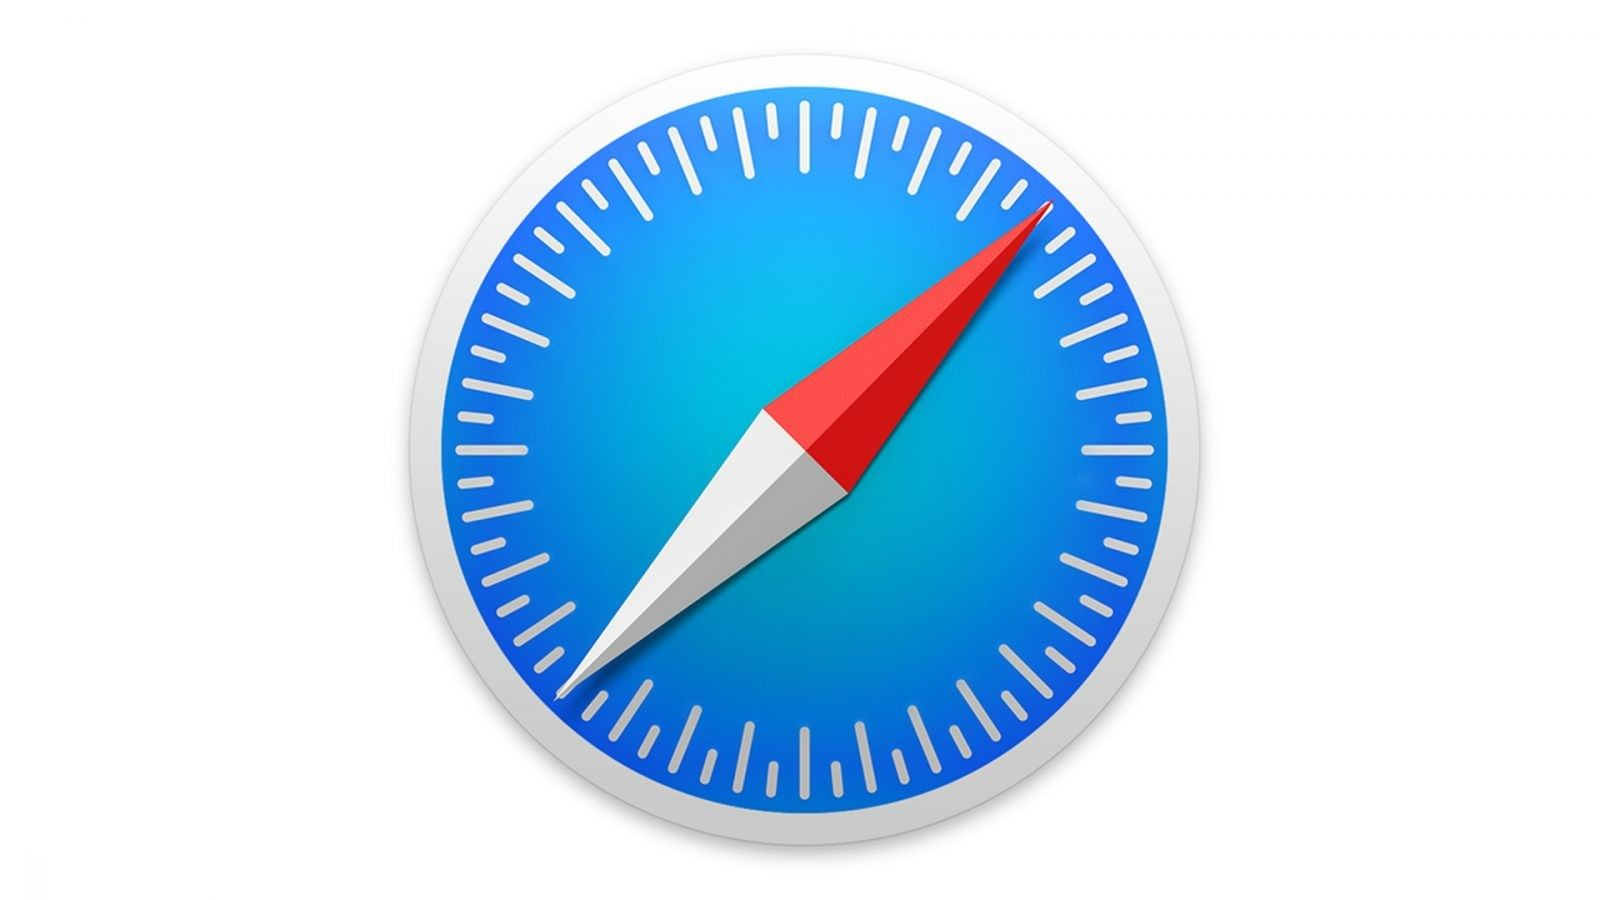 set a safari homepage for all users